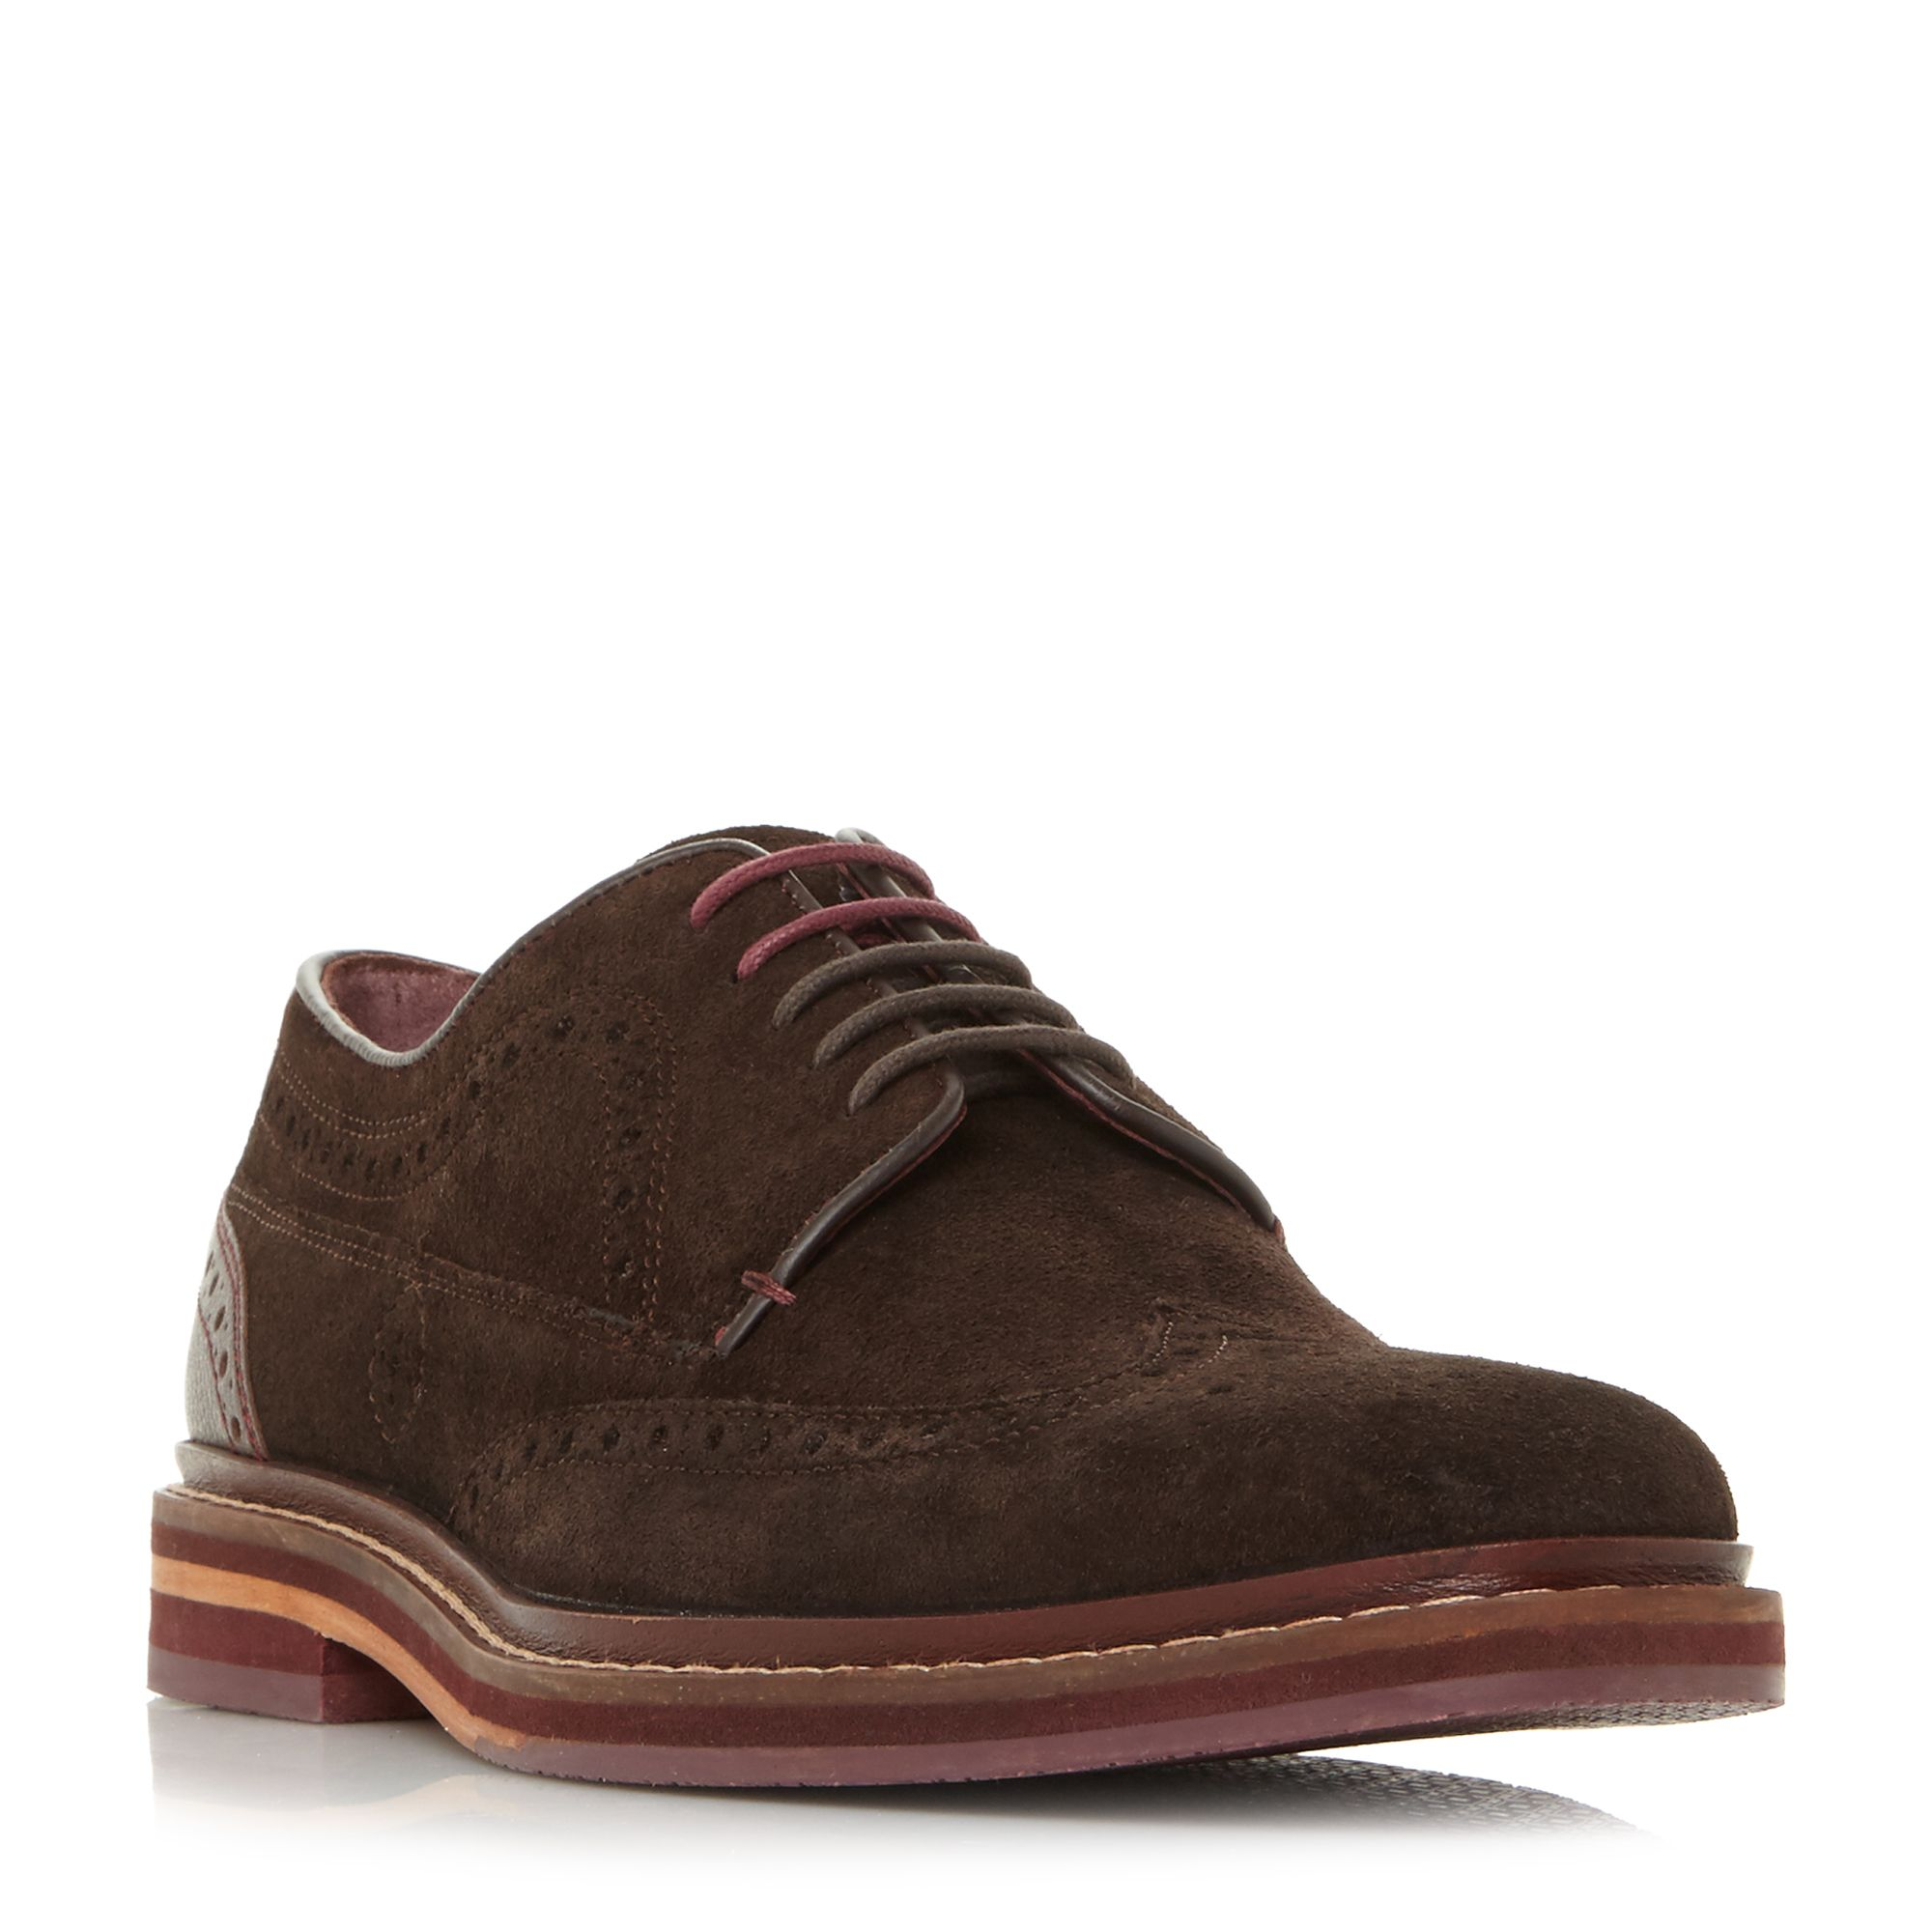 Gourdns Suede Derby Brogue Shoes by Ted Baker